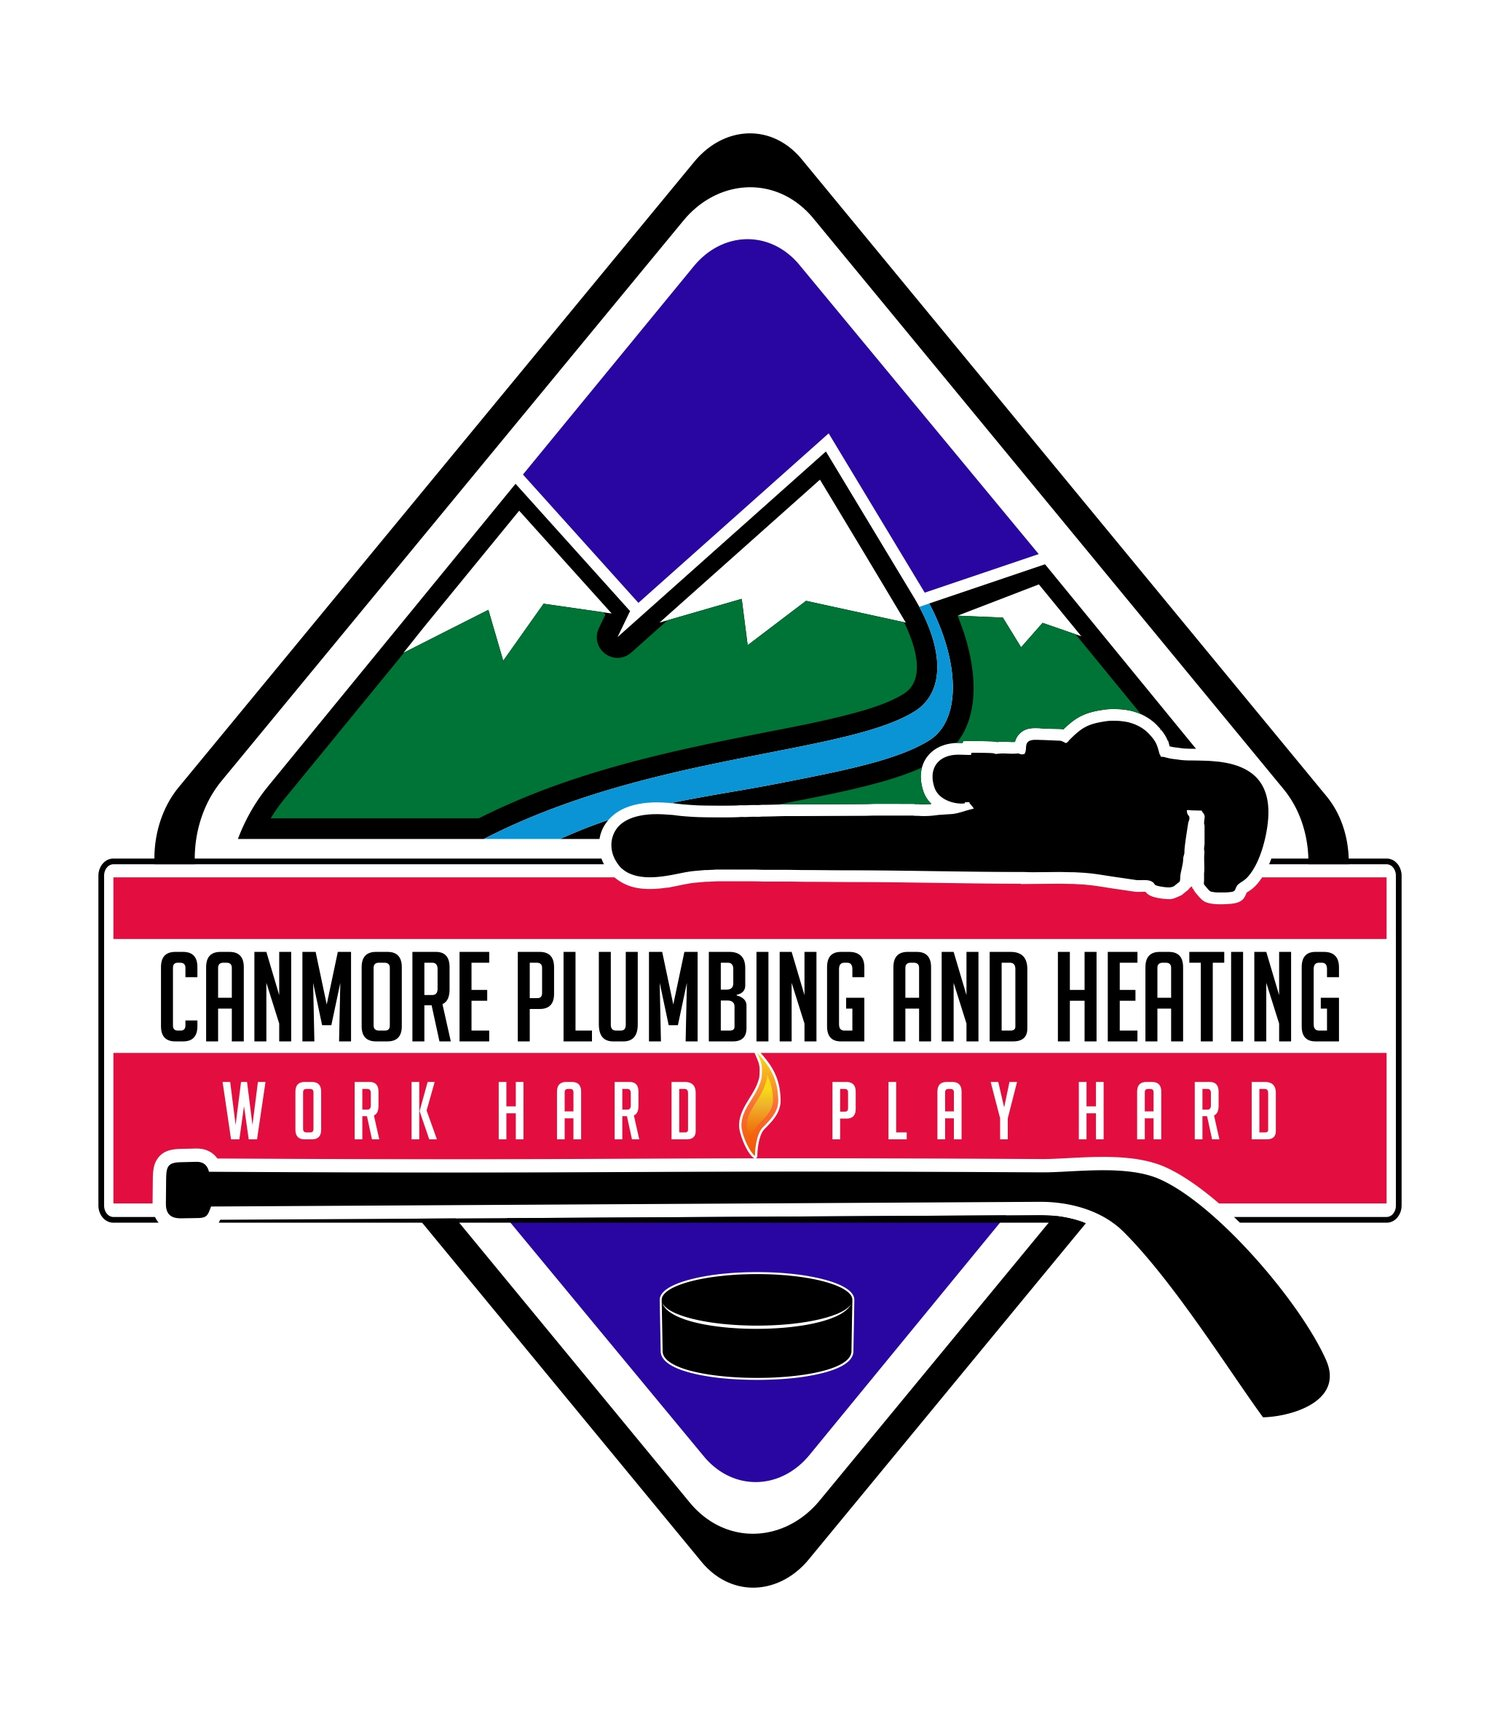 Canmore Plumbing & Heating